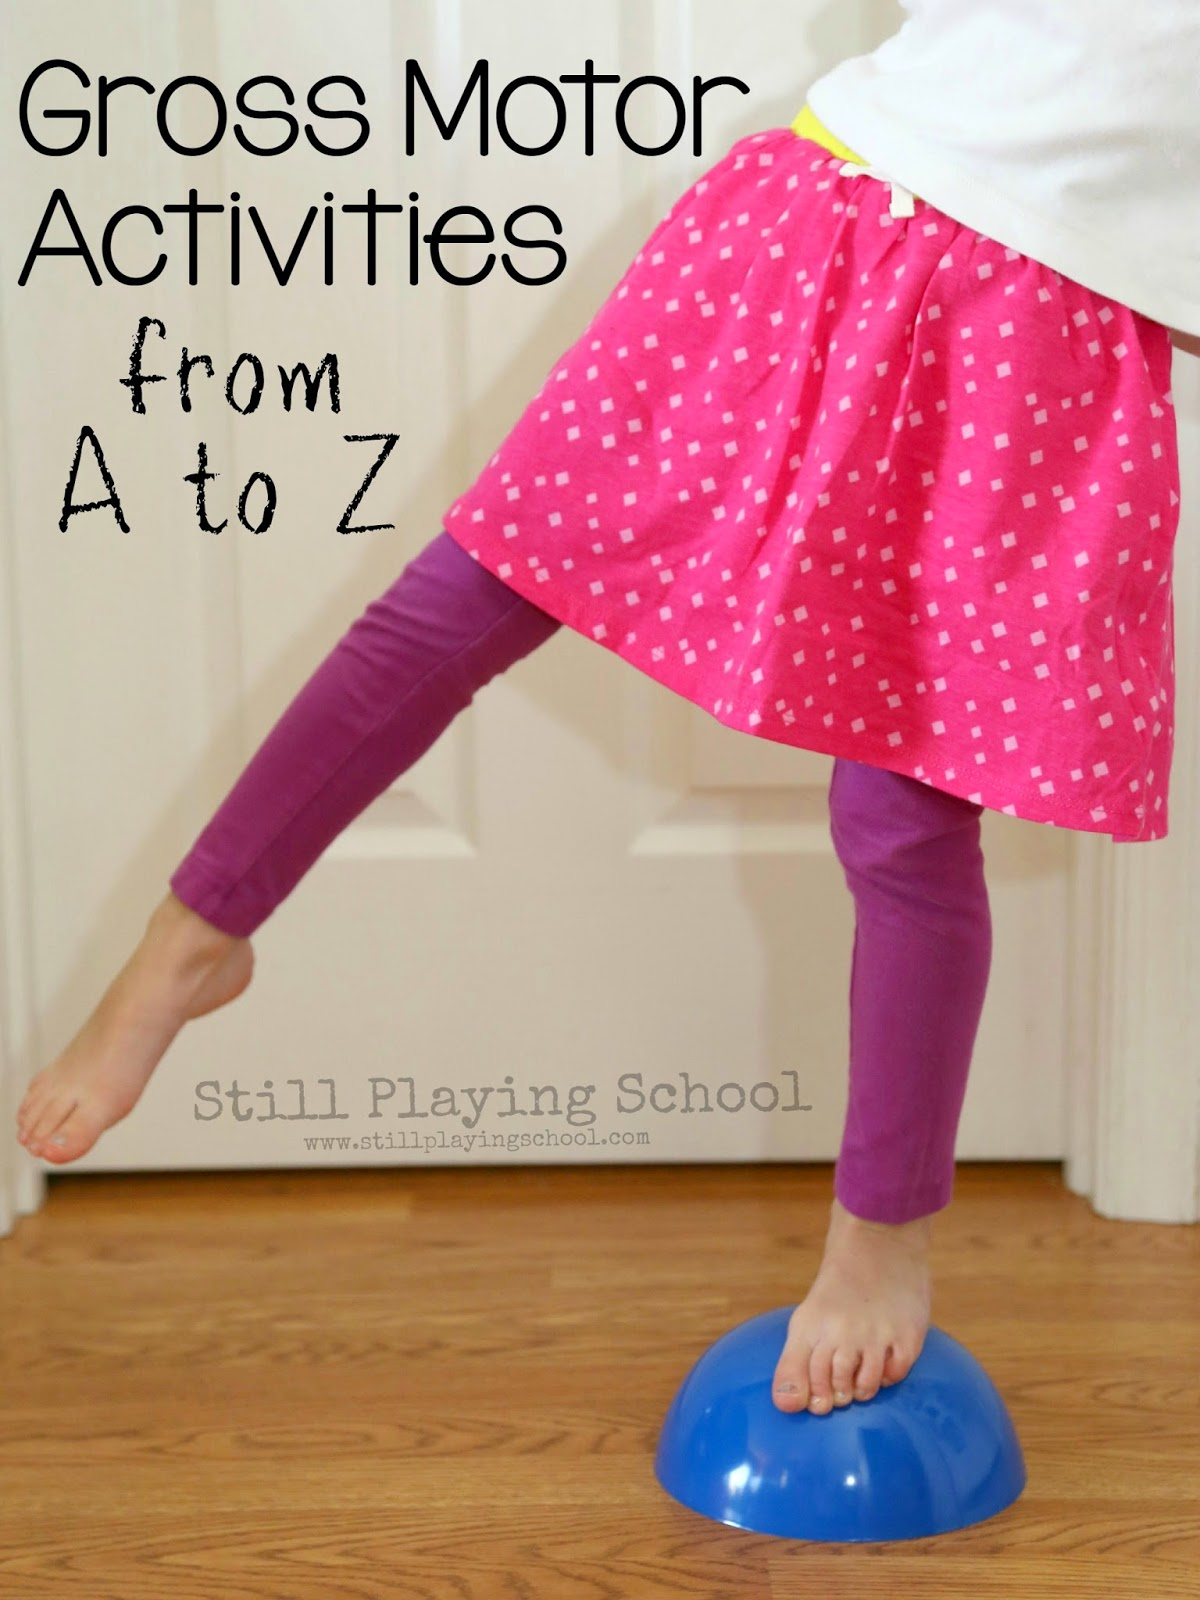 Gross Motor Activities from A to Z